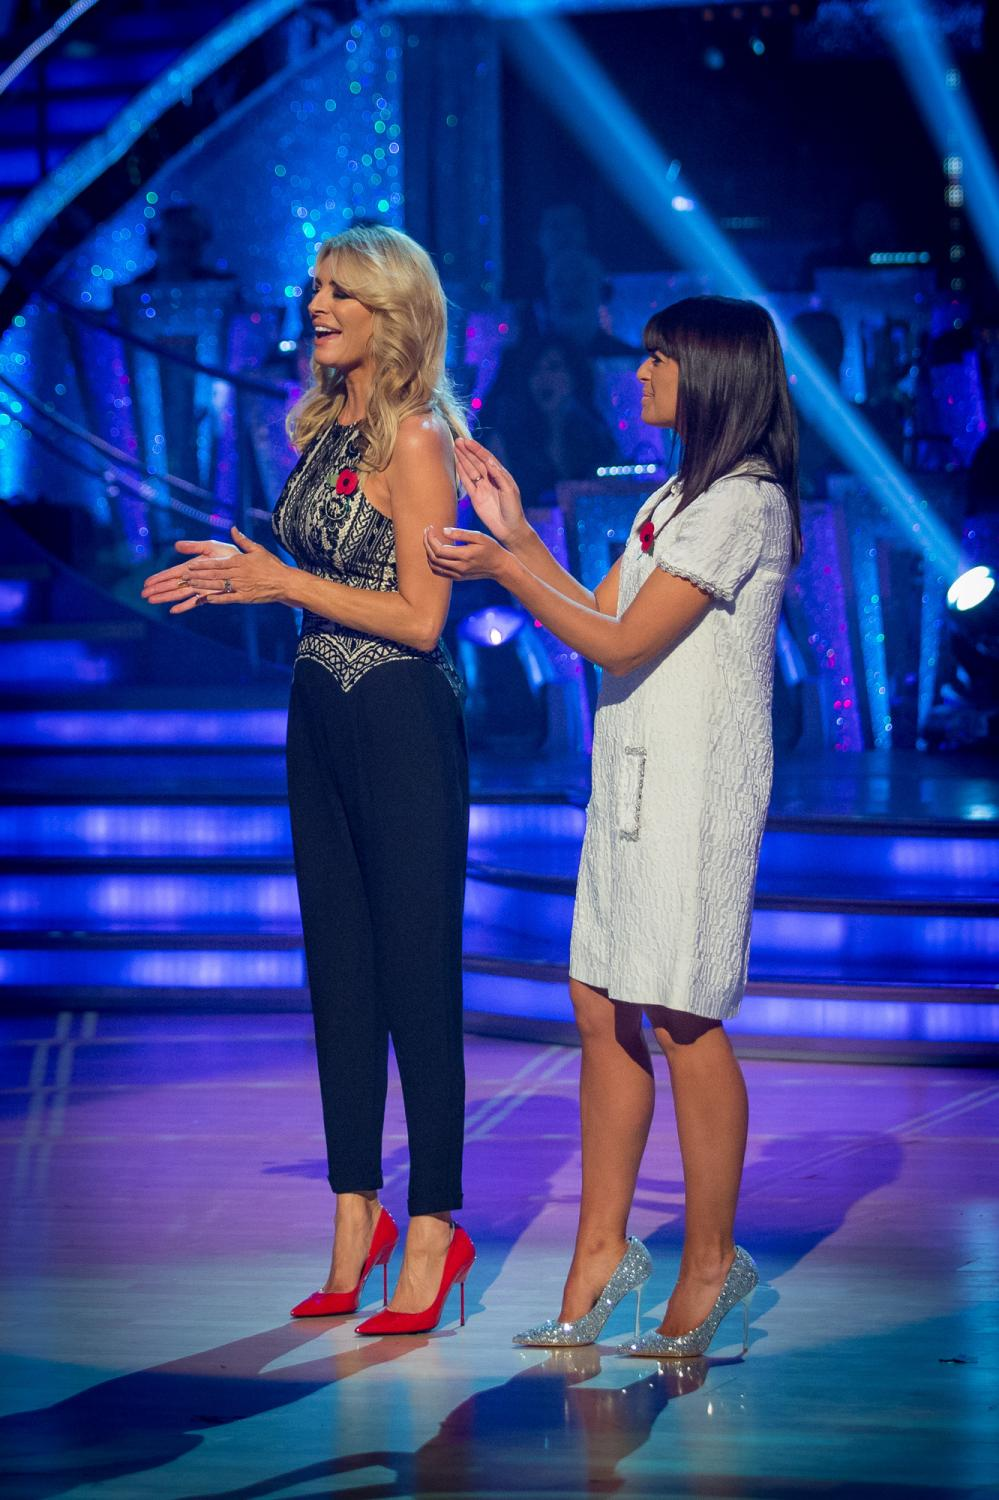 Claudia Winkleman and Tess Daly reveal Strictly line-up news as filming finally starts Claudia Winkleman and Tess Daly reveal Strictly line-up news as filming finally starts new pictures